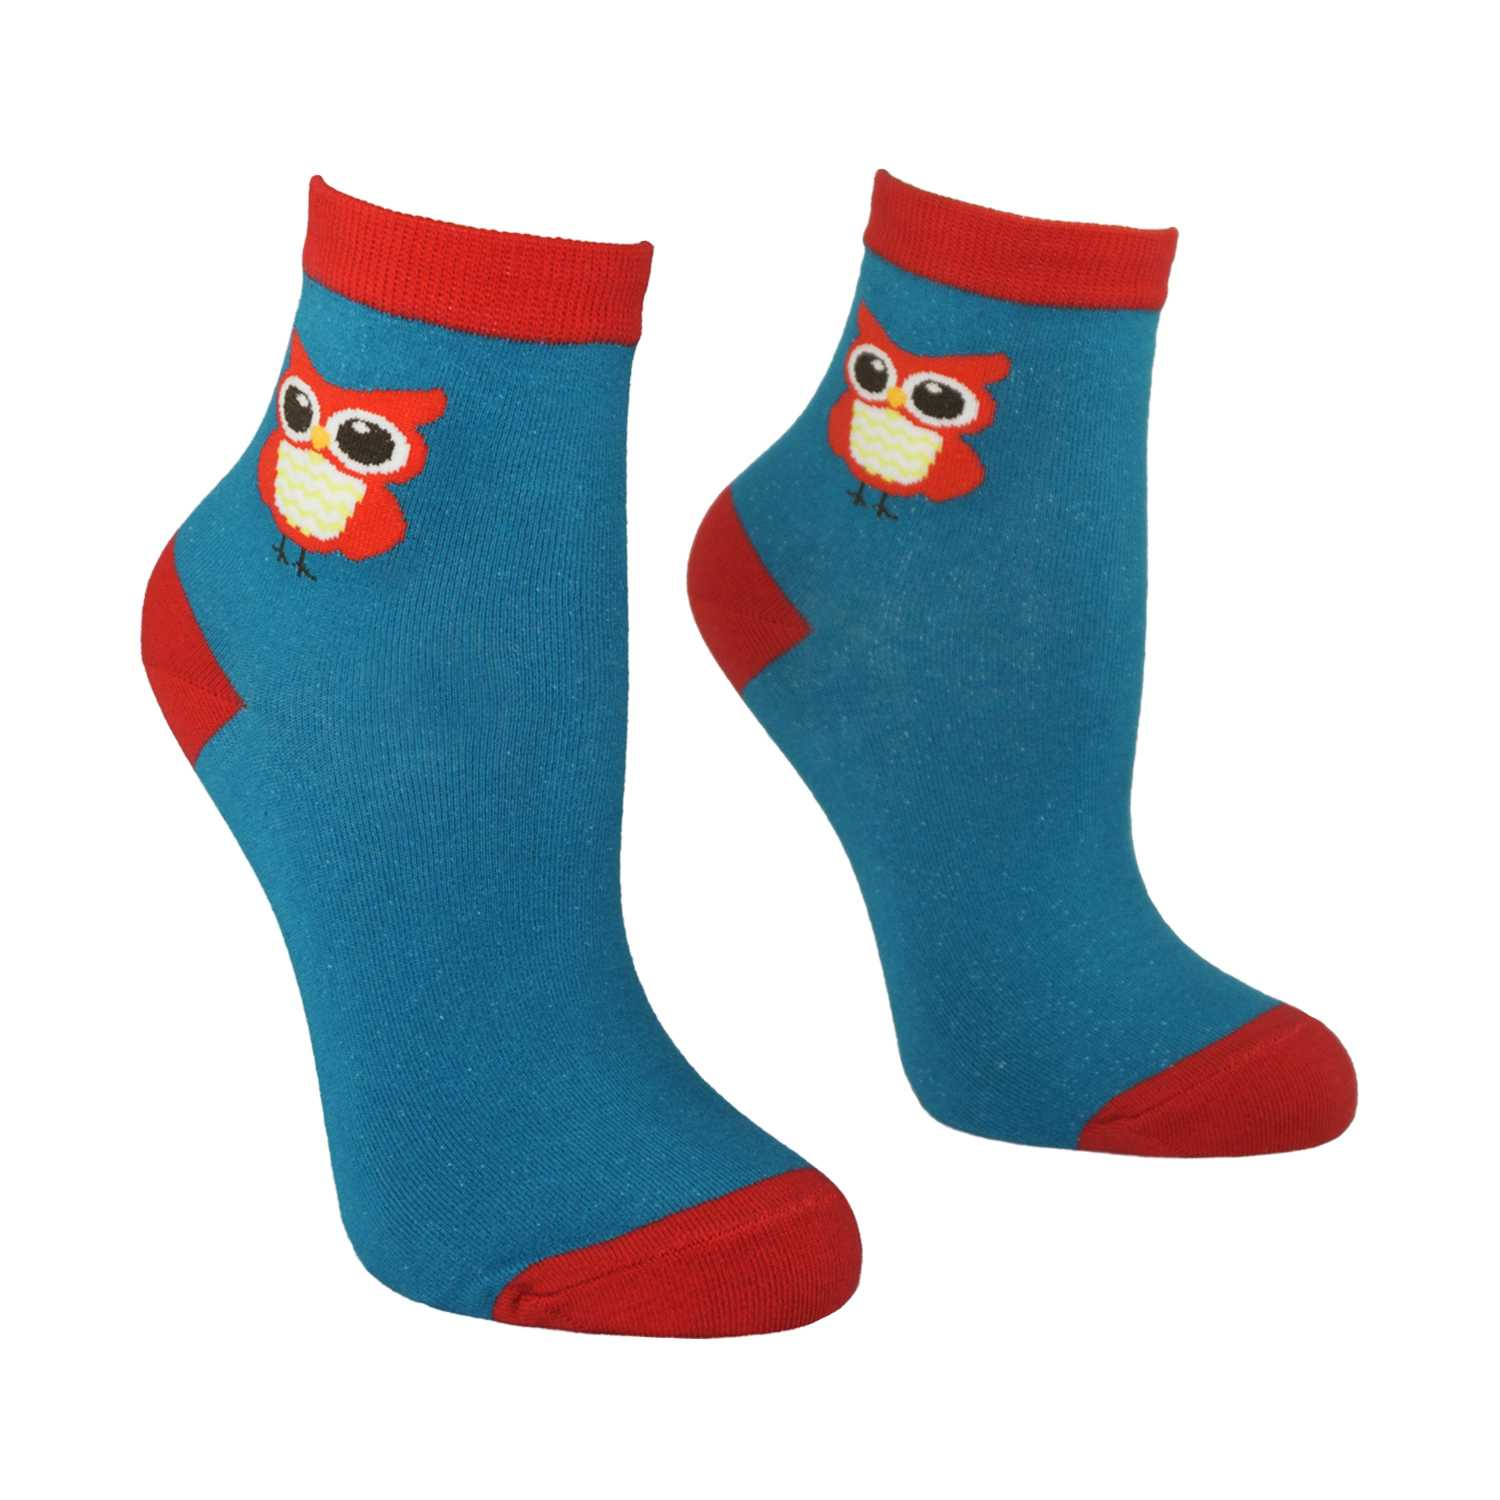 Women's Owl Design Crew Socks - Teal - Zestique